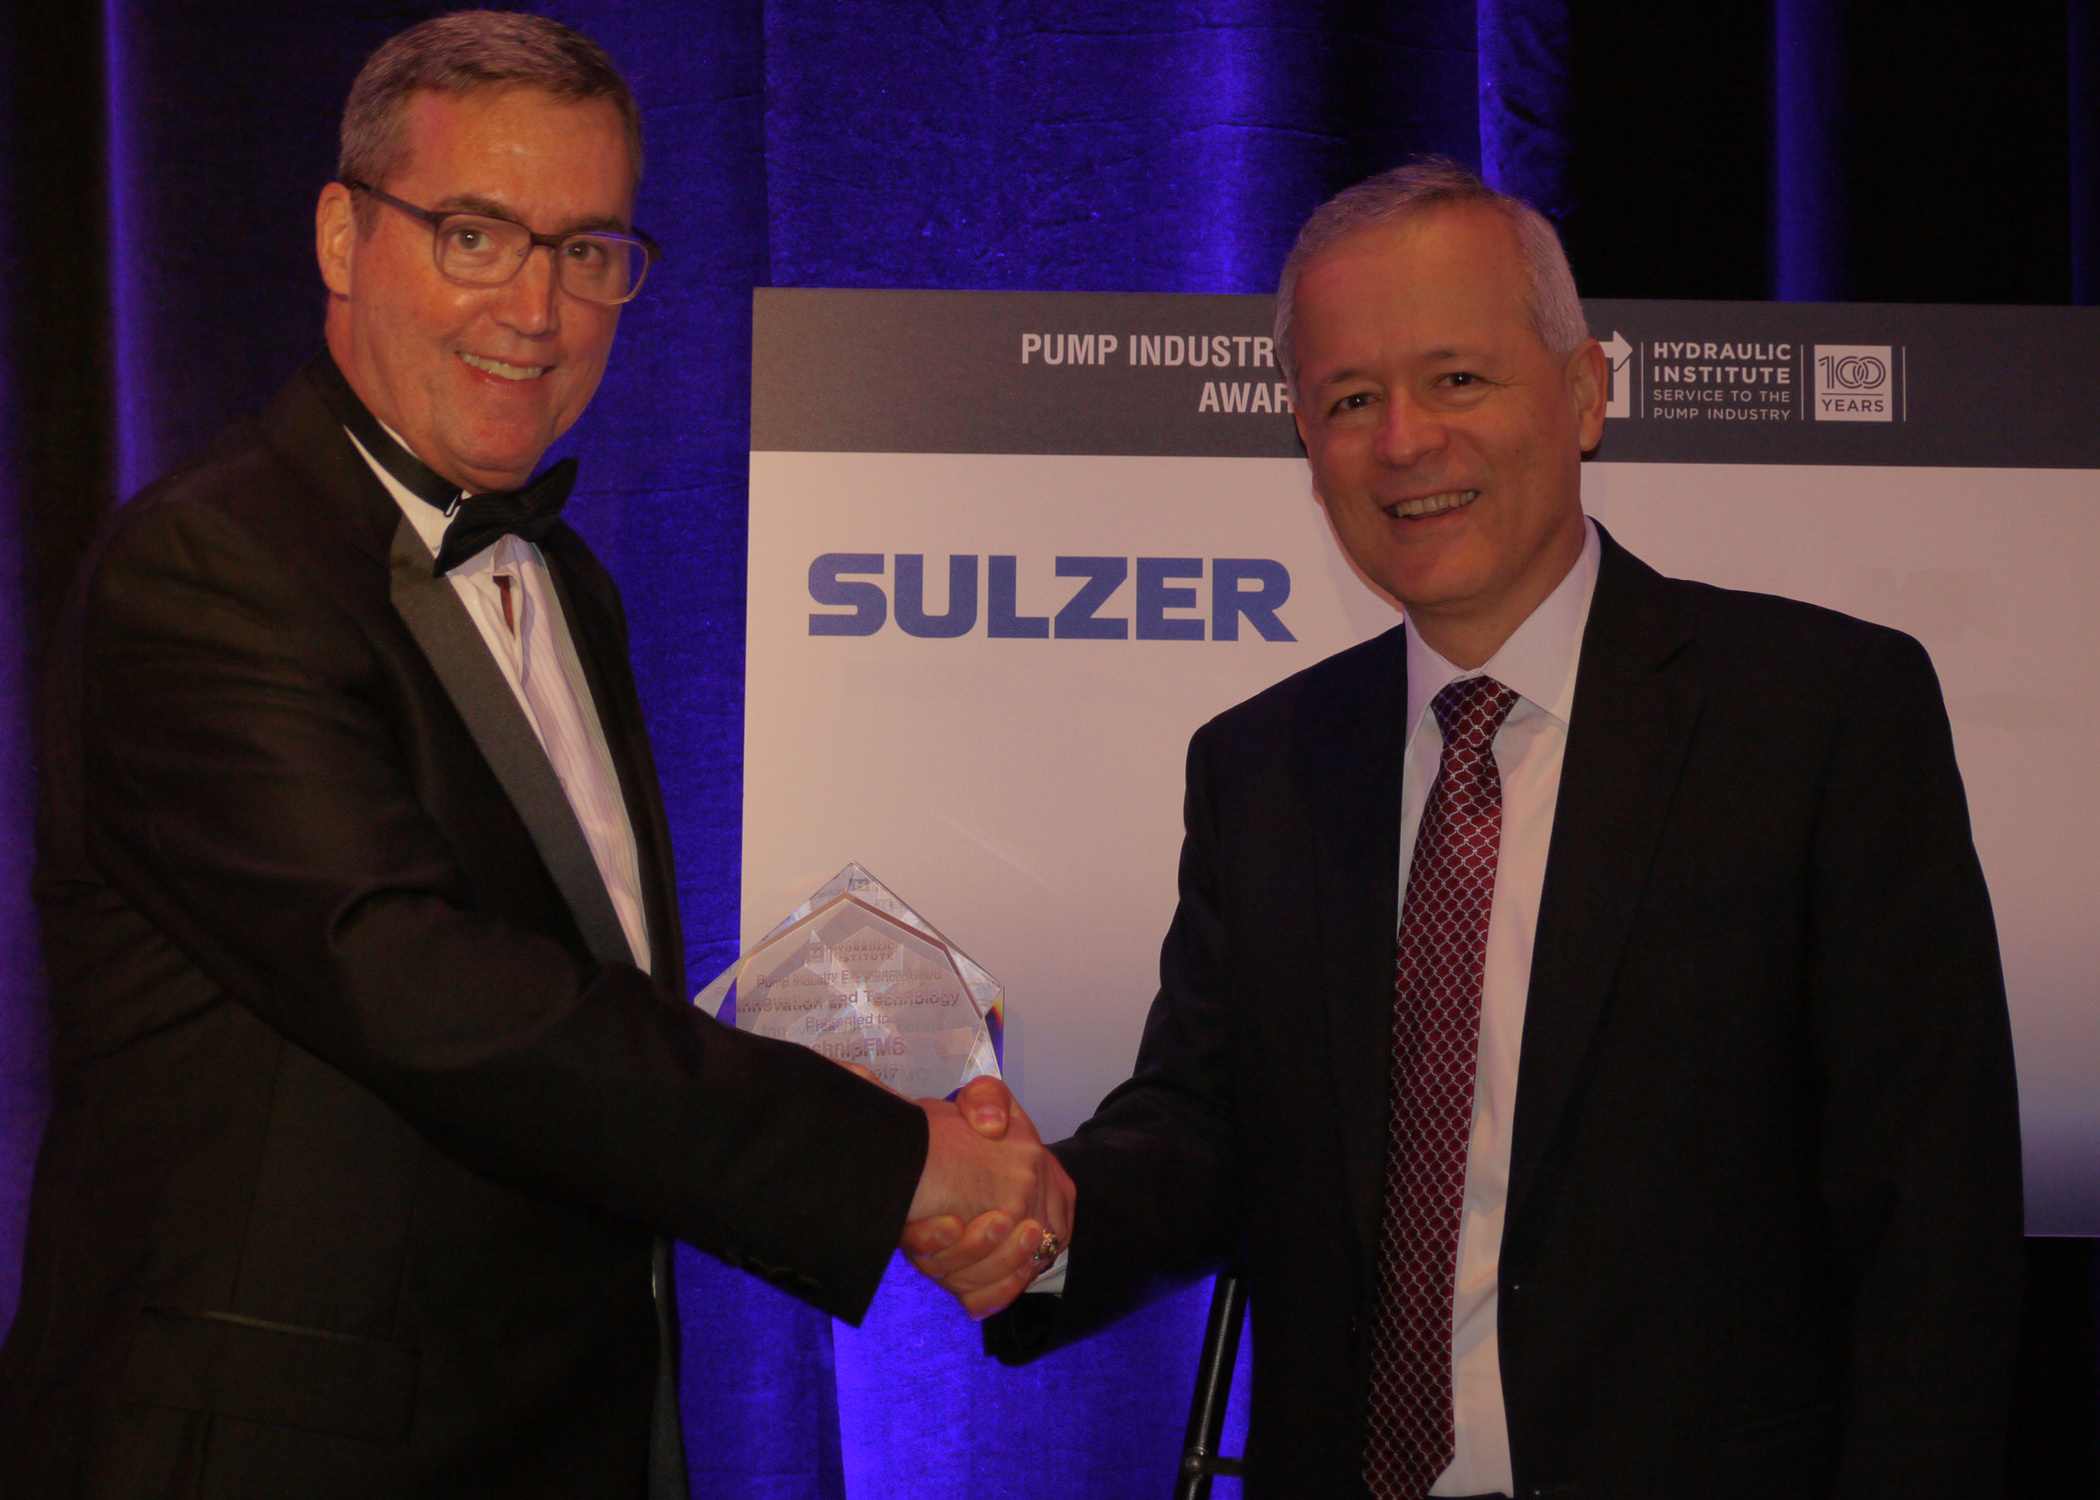 Recognizing Subsea Innovation<br>